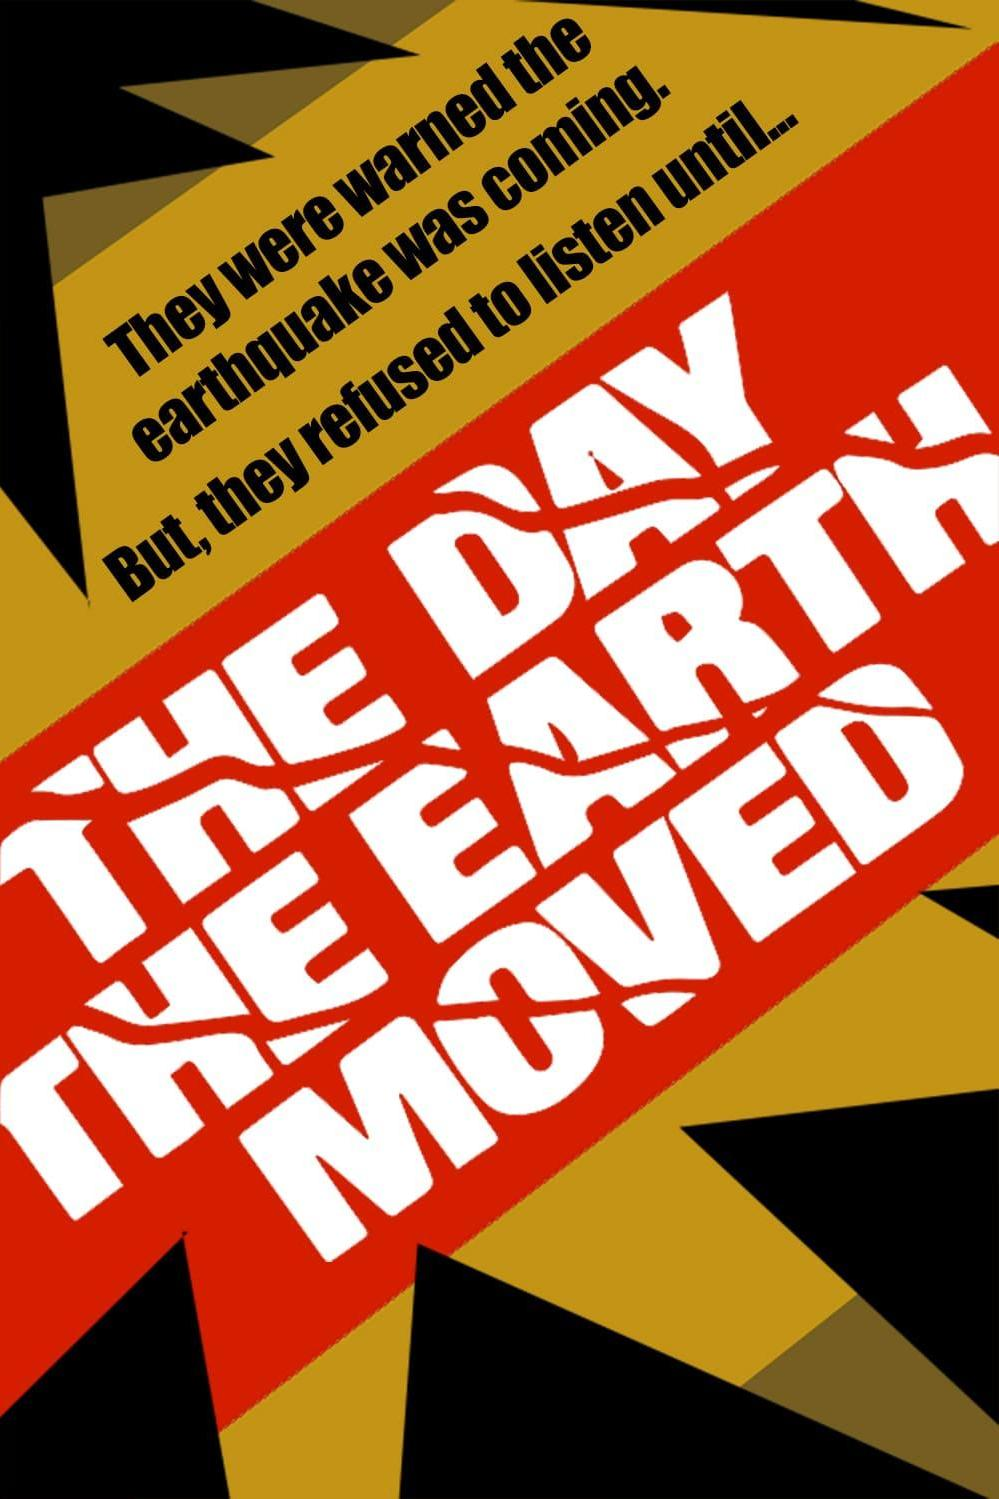 The Day the Earth Moved (1974)